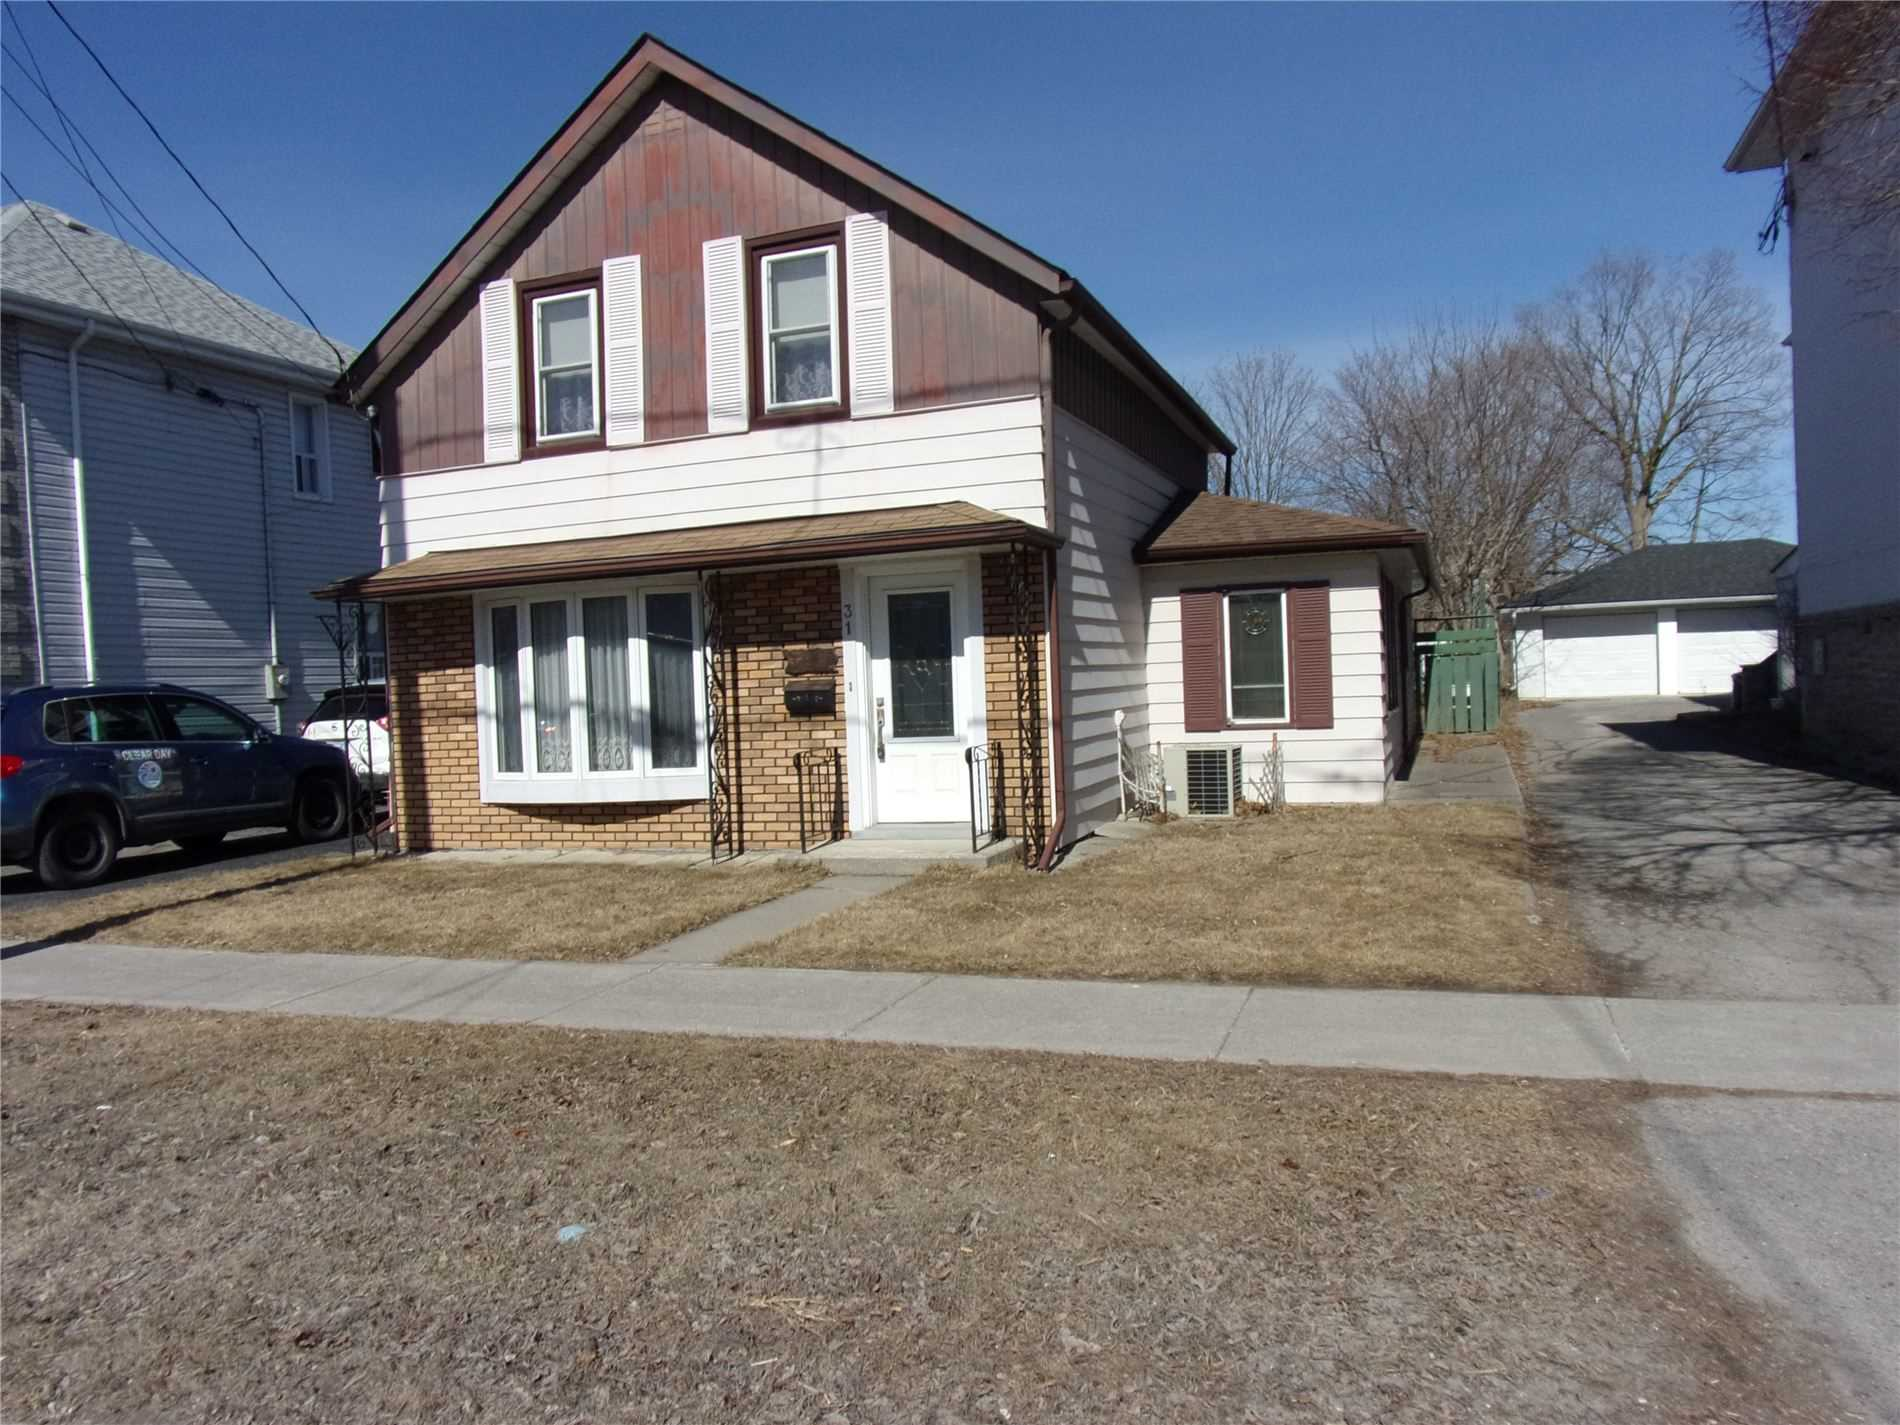 31 Marmora St, Quinte West, Ontario K8V 2H7, 1 Bedroom Bedrooms, ,2 BathroomsBathrooms,Detached,For Sale,Marmora,X5162933